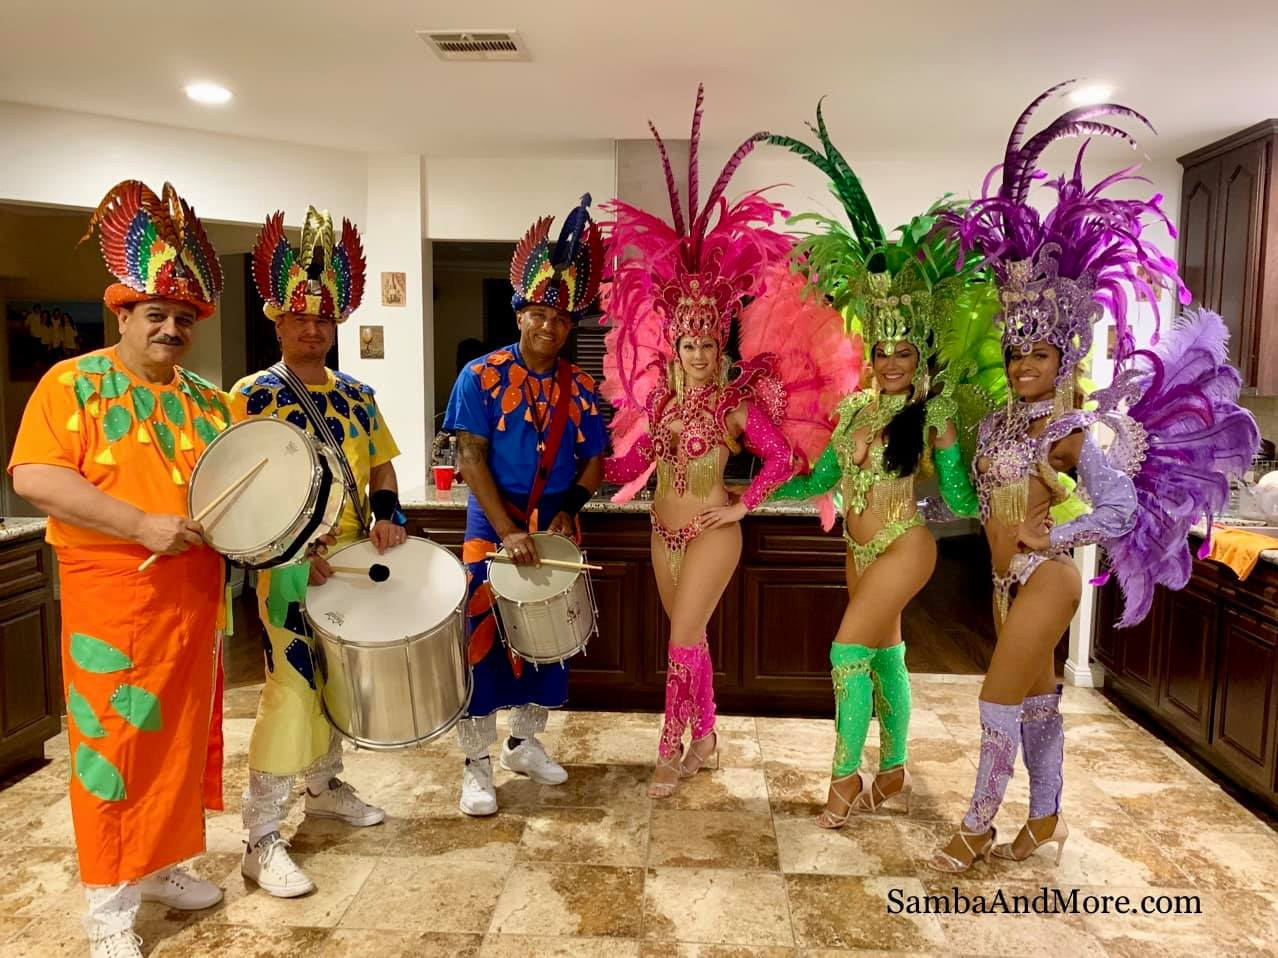 Samba And More Brazilian Show-min.jpg